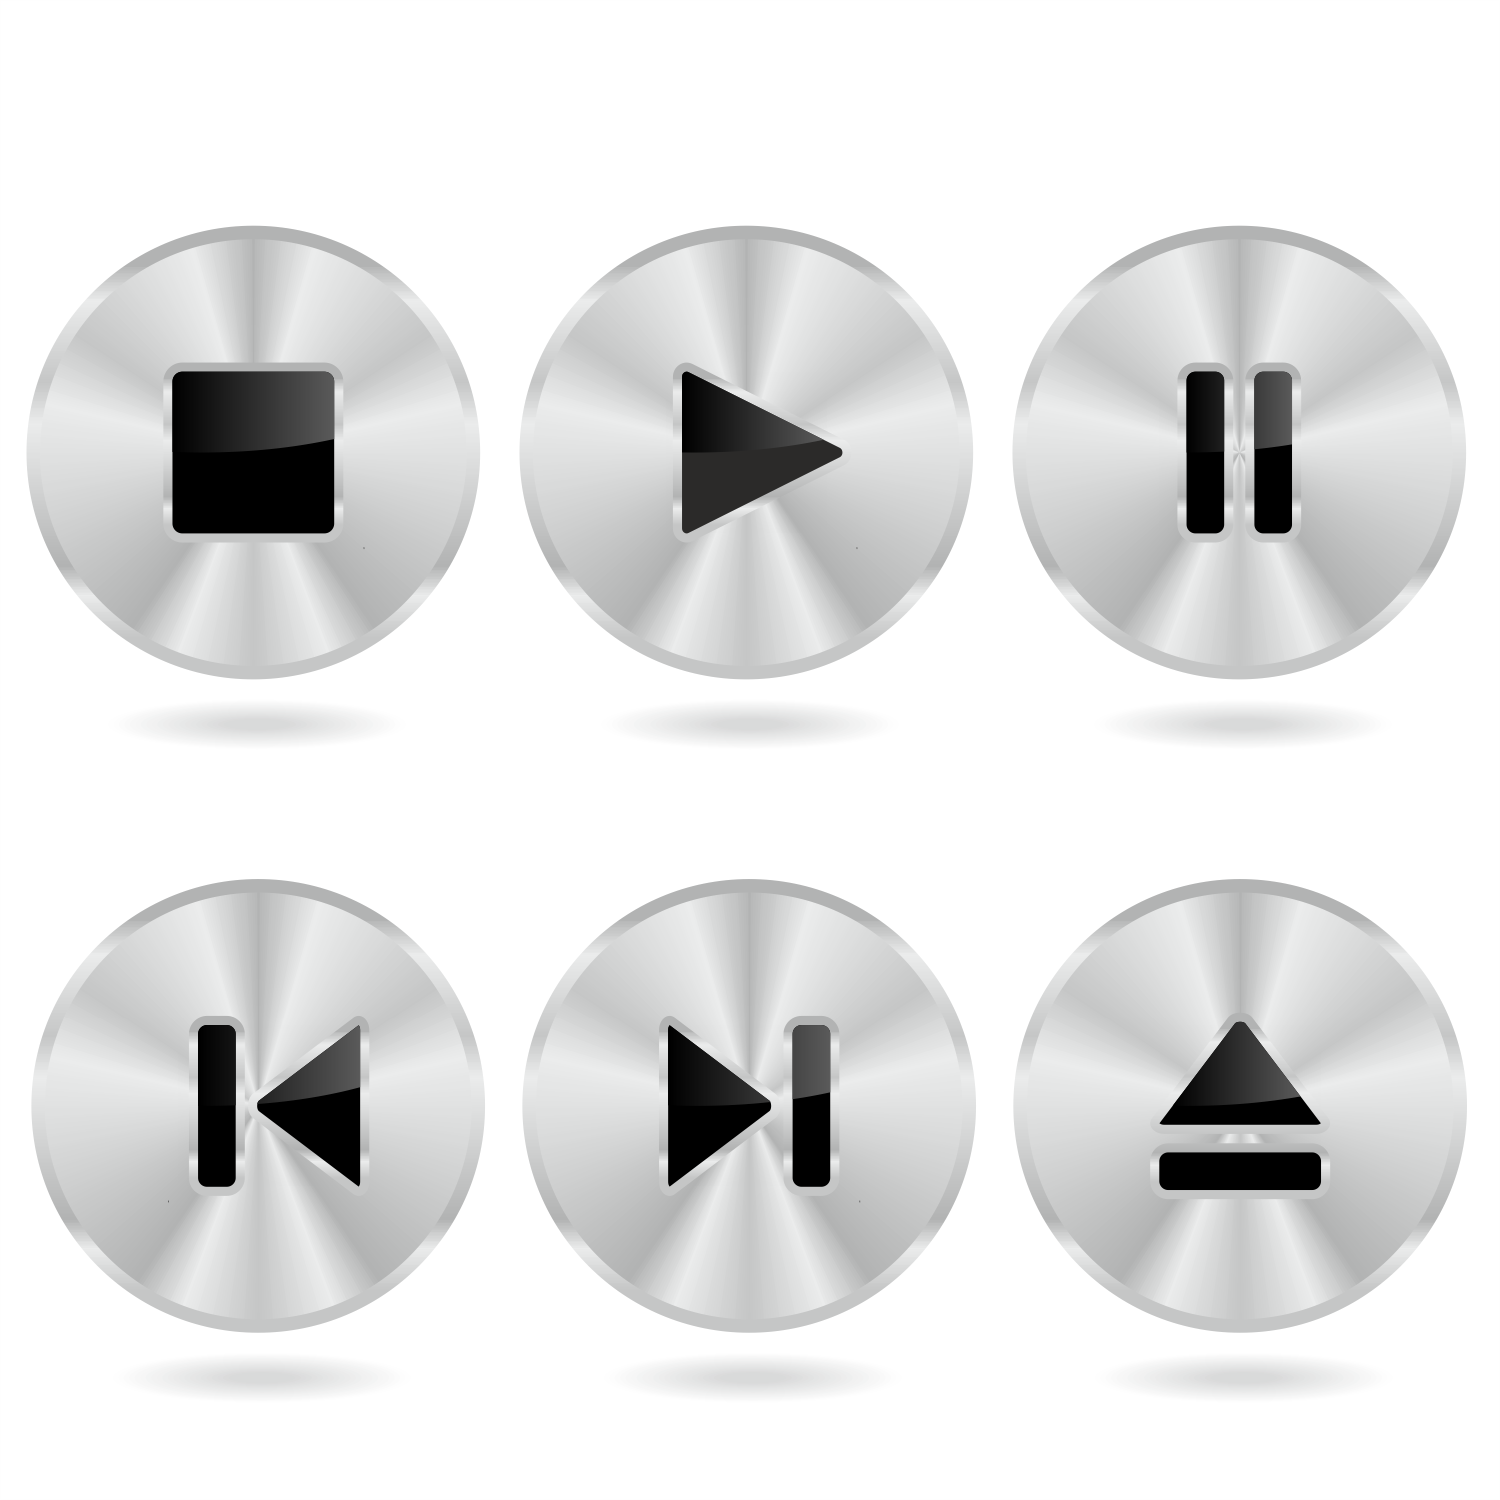 picture stock For free use player. Vector buttons metal